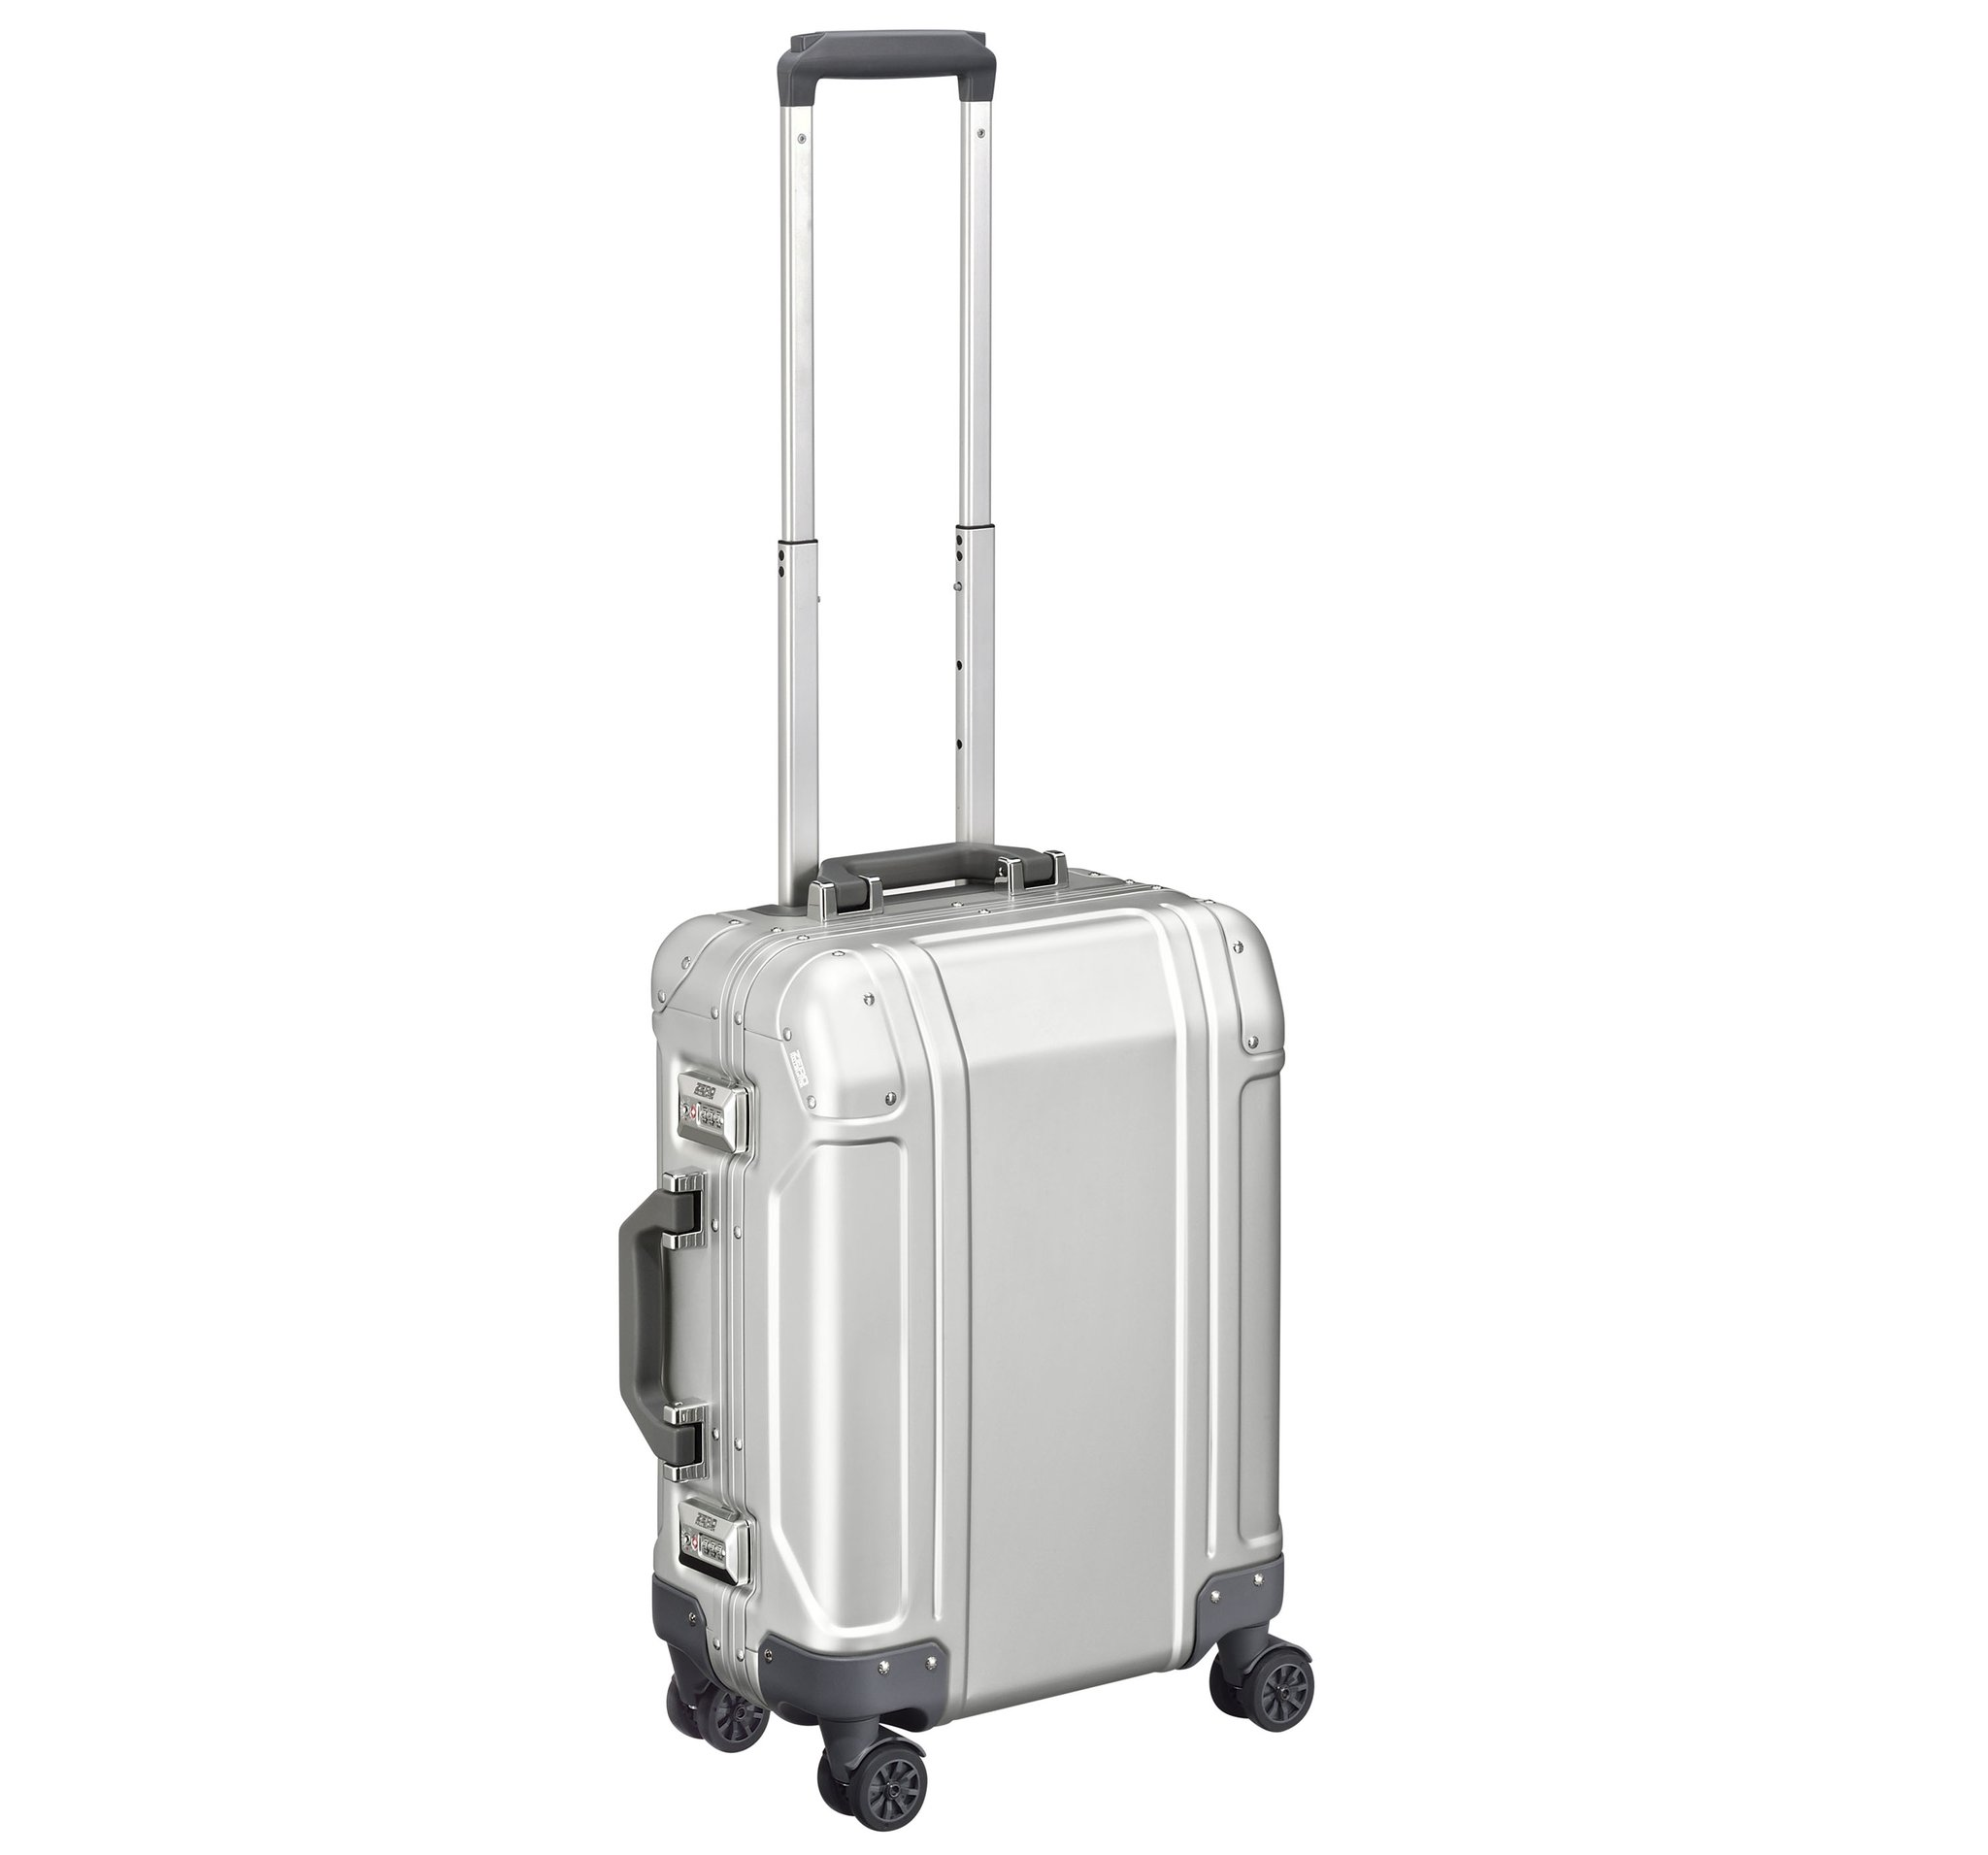 GEO Aluminum 3.0 - Carry-on 4-Wheel Spinner by Zero Halliburton (Color: Silver)